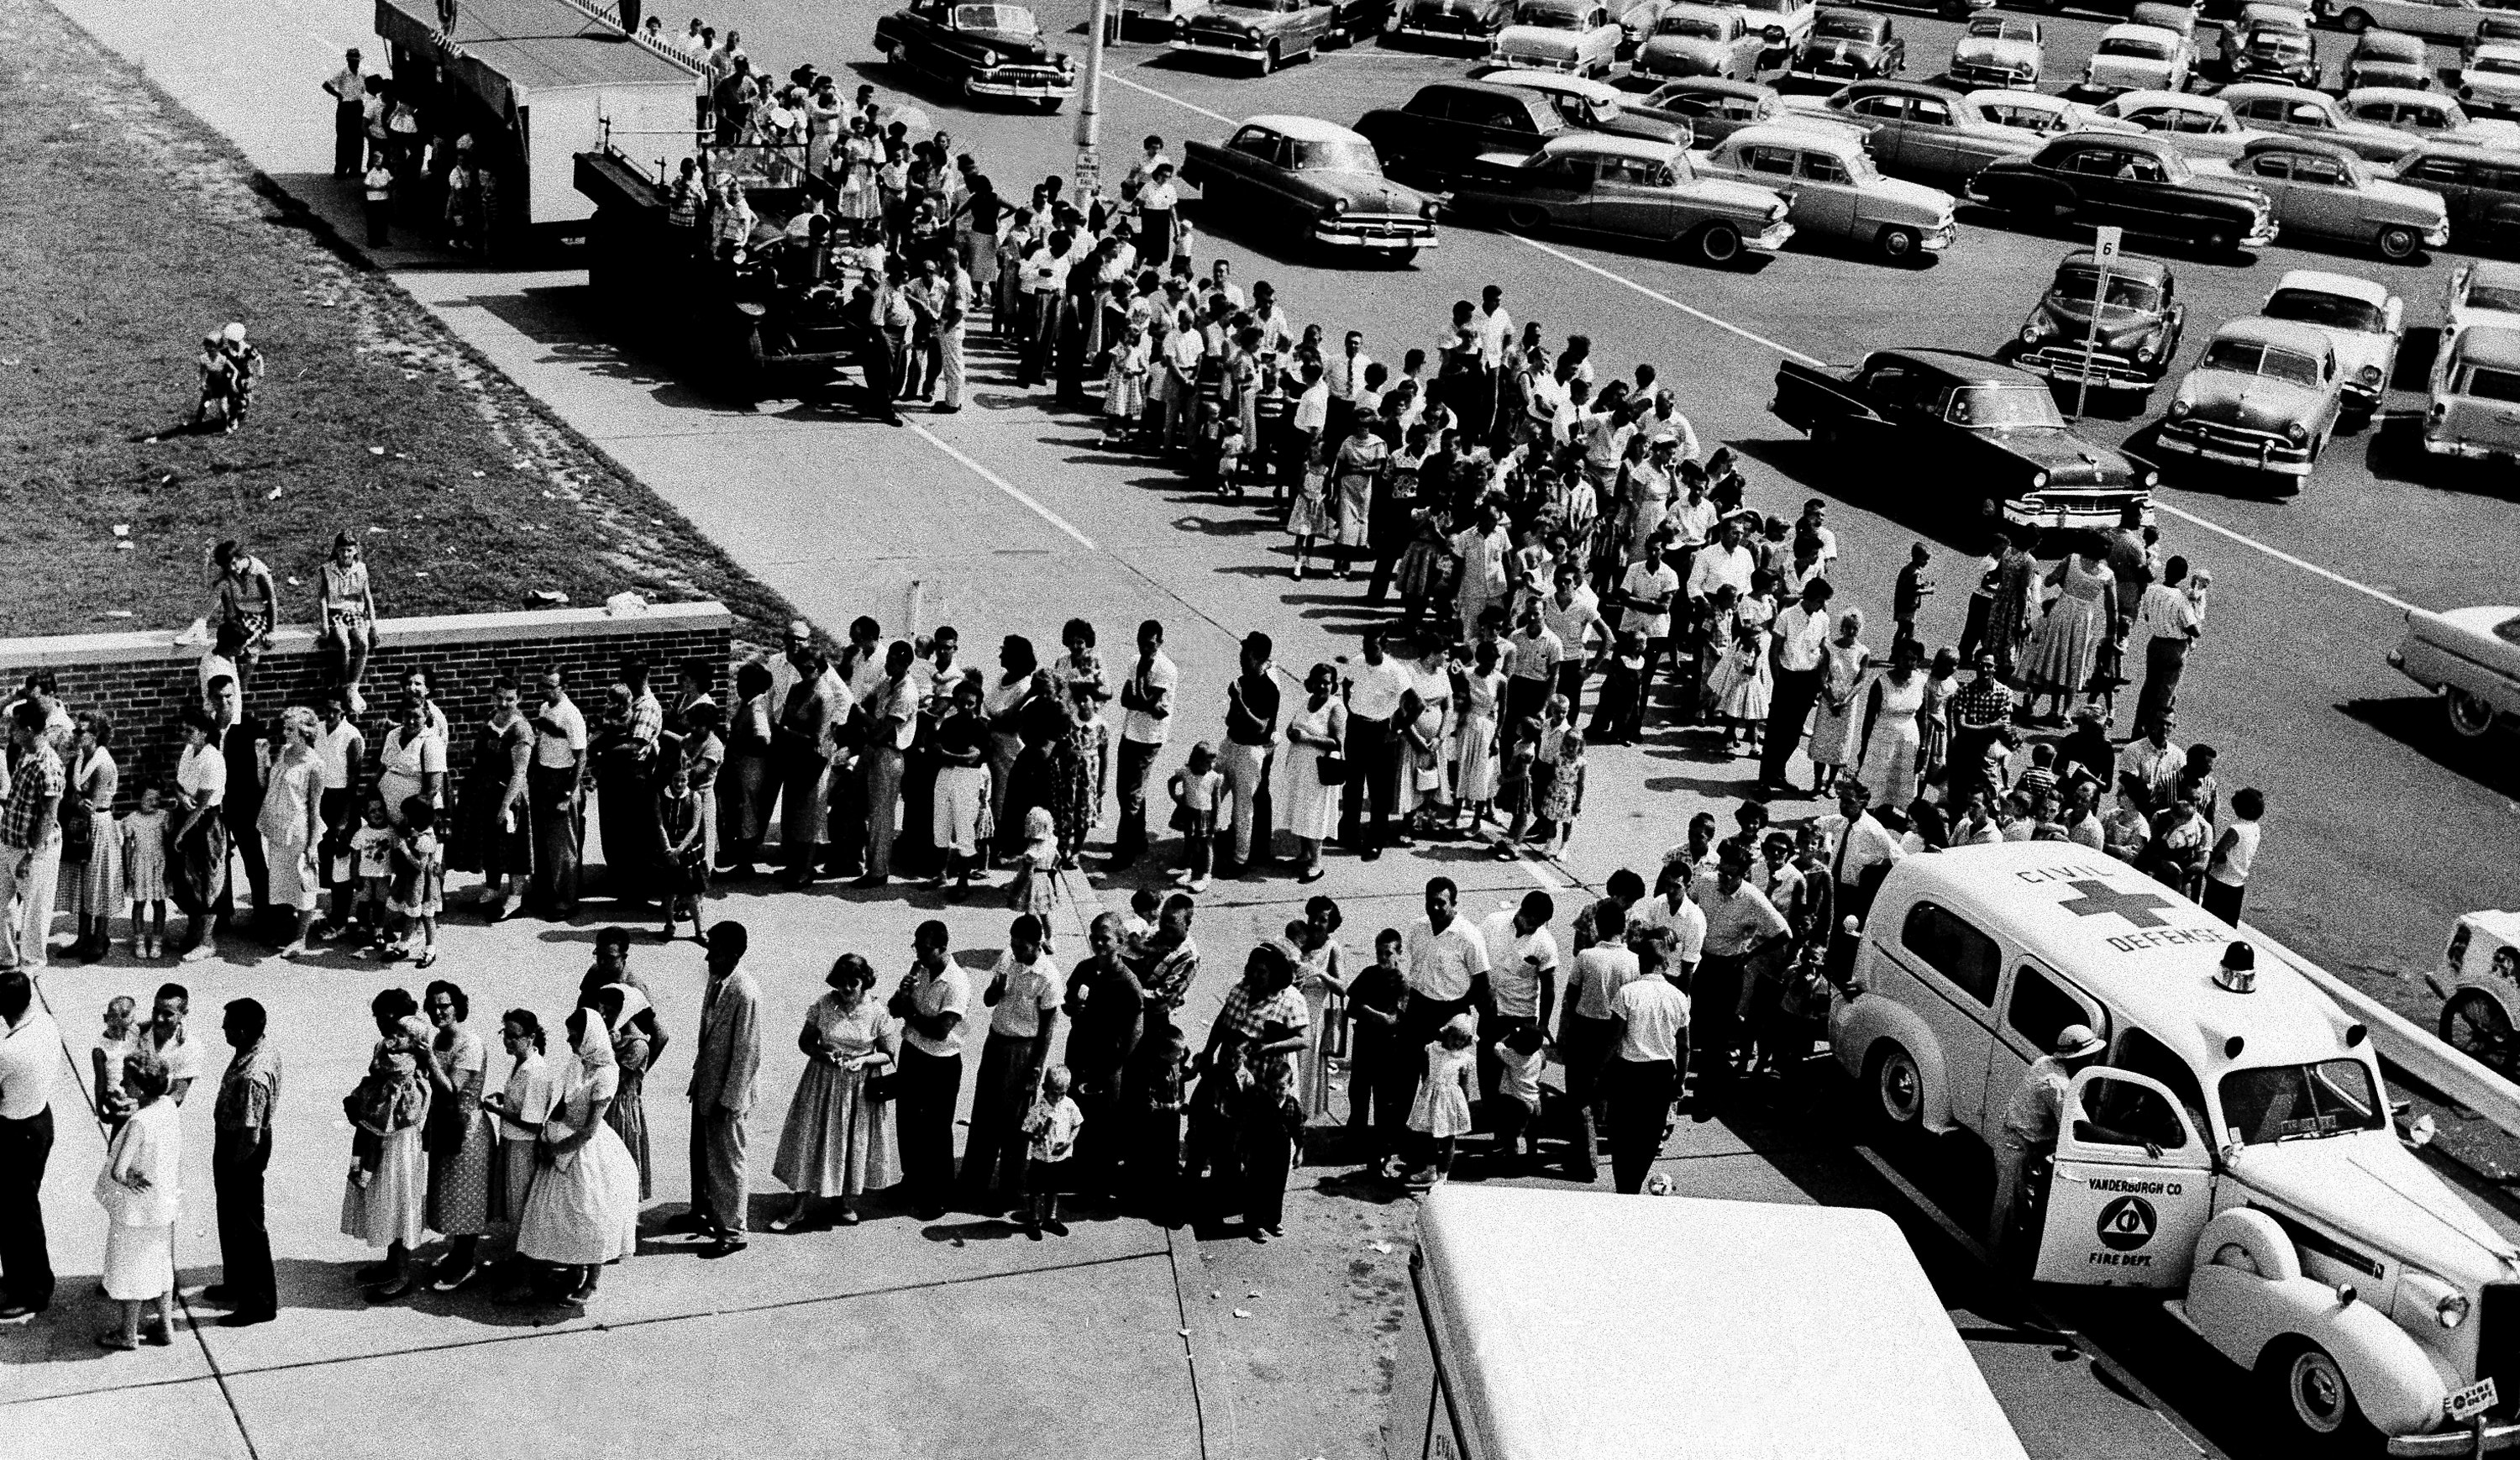 People waiting for a polio shot.